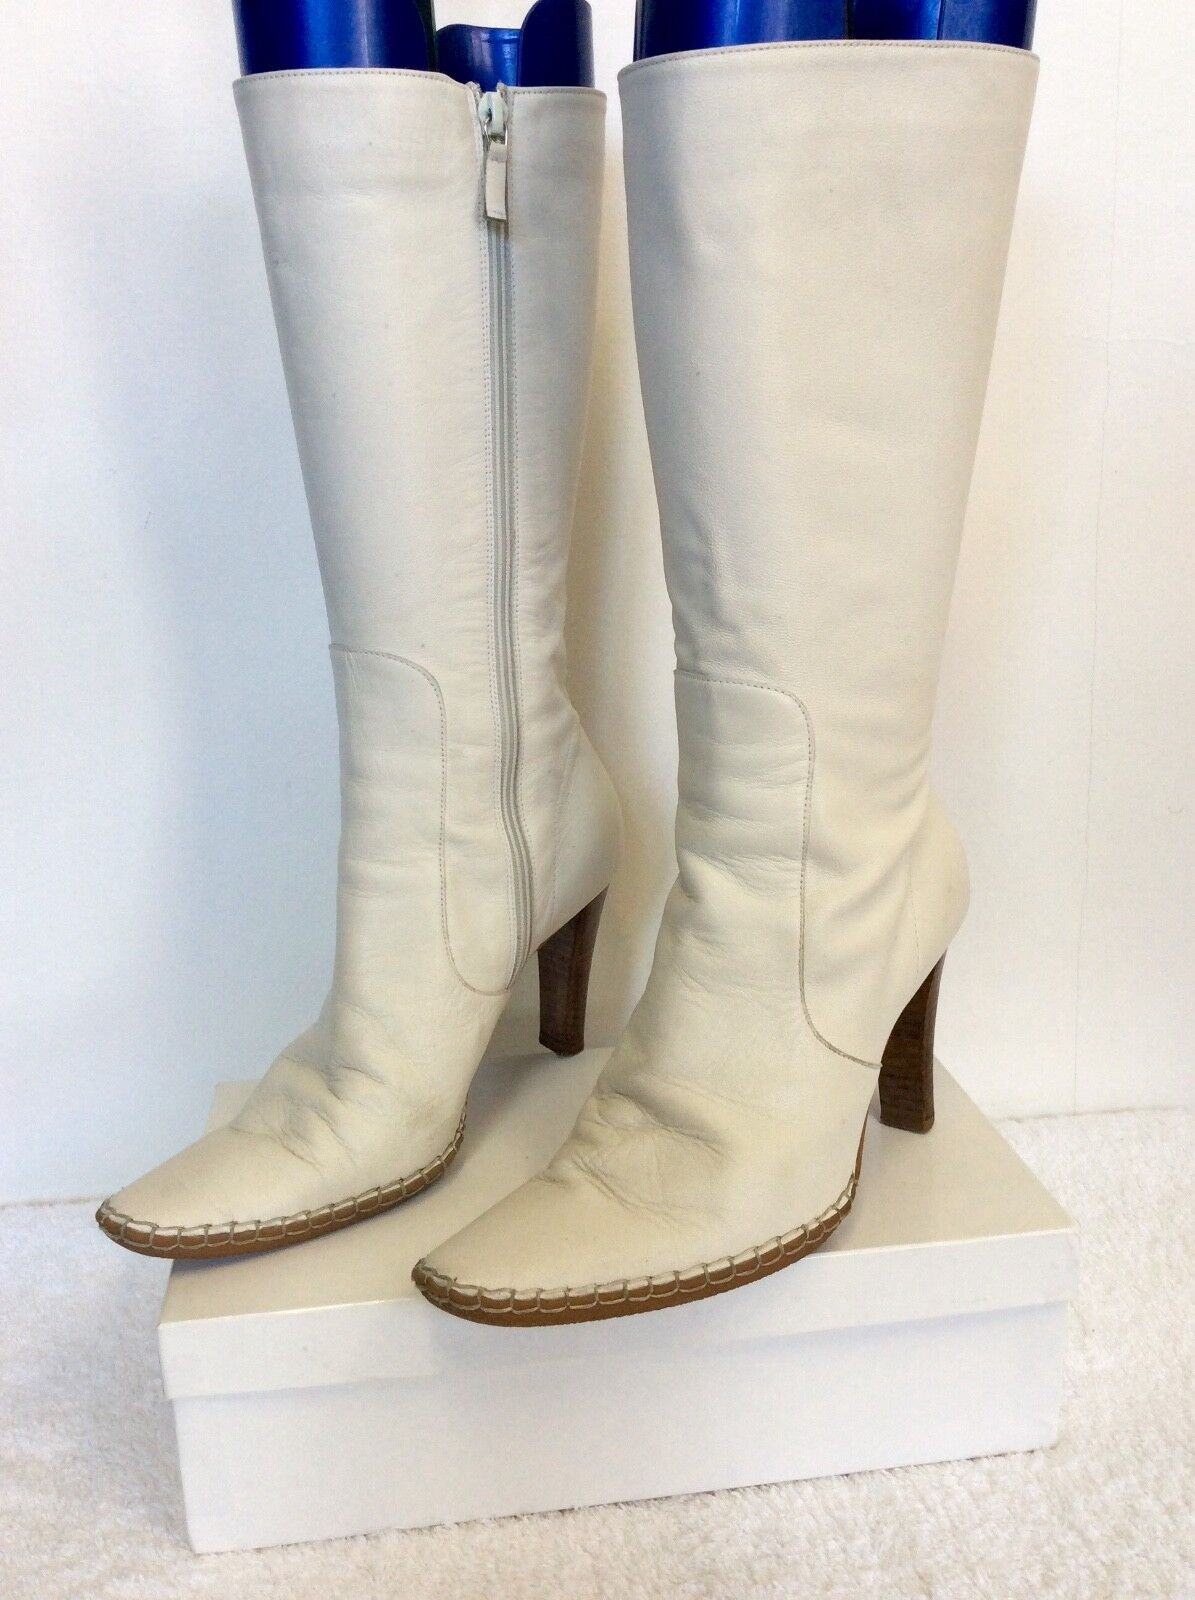 KURT 3.5/36 GEIGER WINTER Weiß LEATHER CALF LENGTH Stiefel SIZE 3.5/36 KURT dd7e21